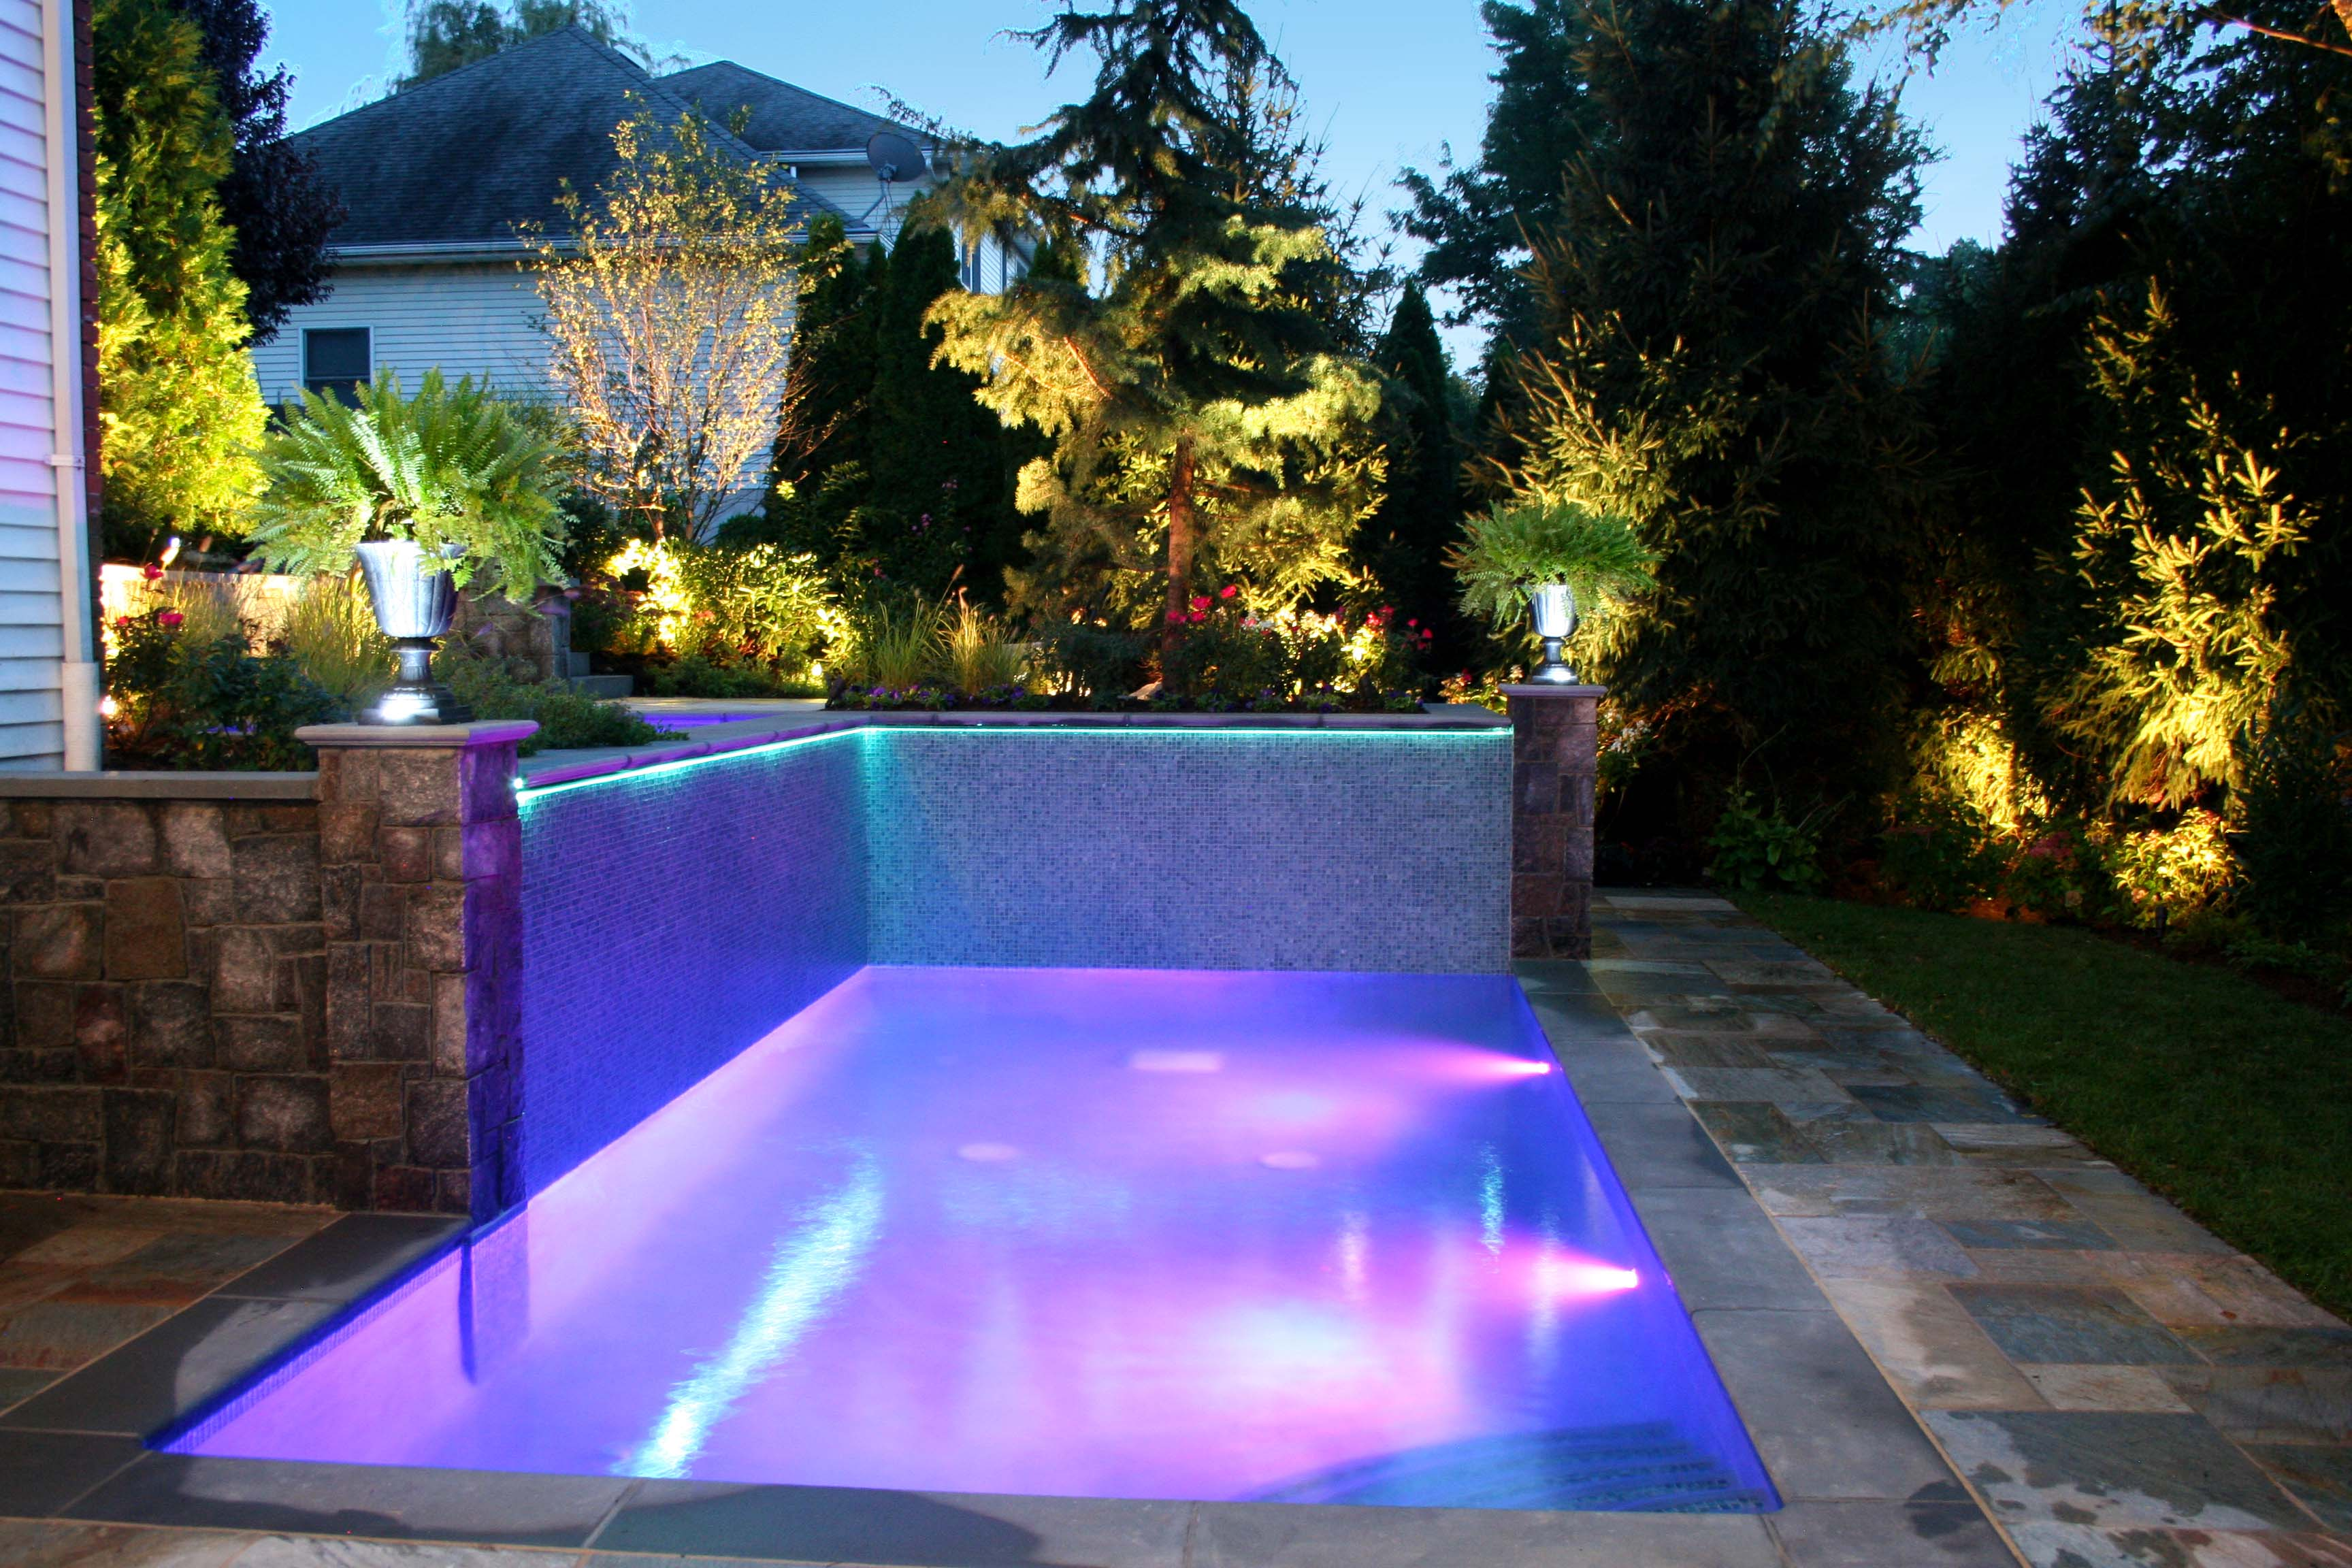 Glass tile swimming pool designs earn new jersey based for Pool design ideas